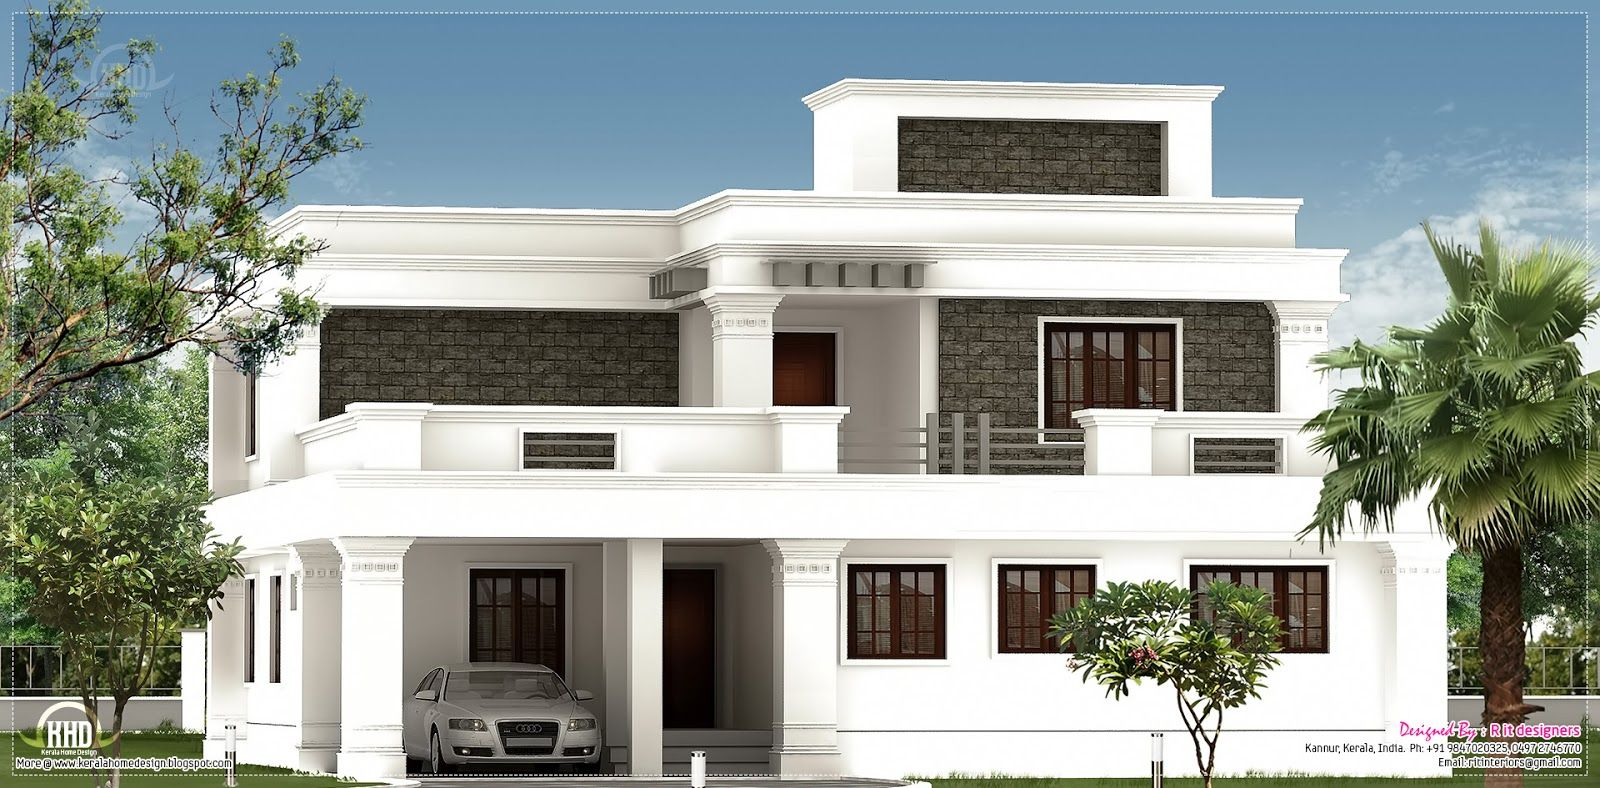 Flat roof homes designs flat roof villa exterior in 2400 for Home front design in indian style